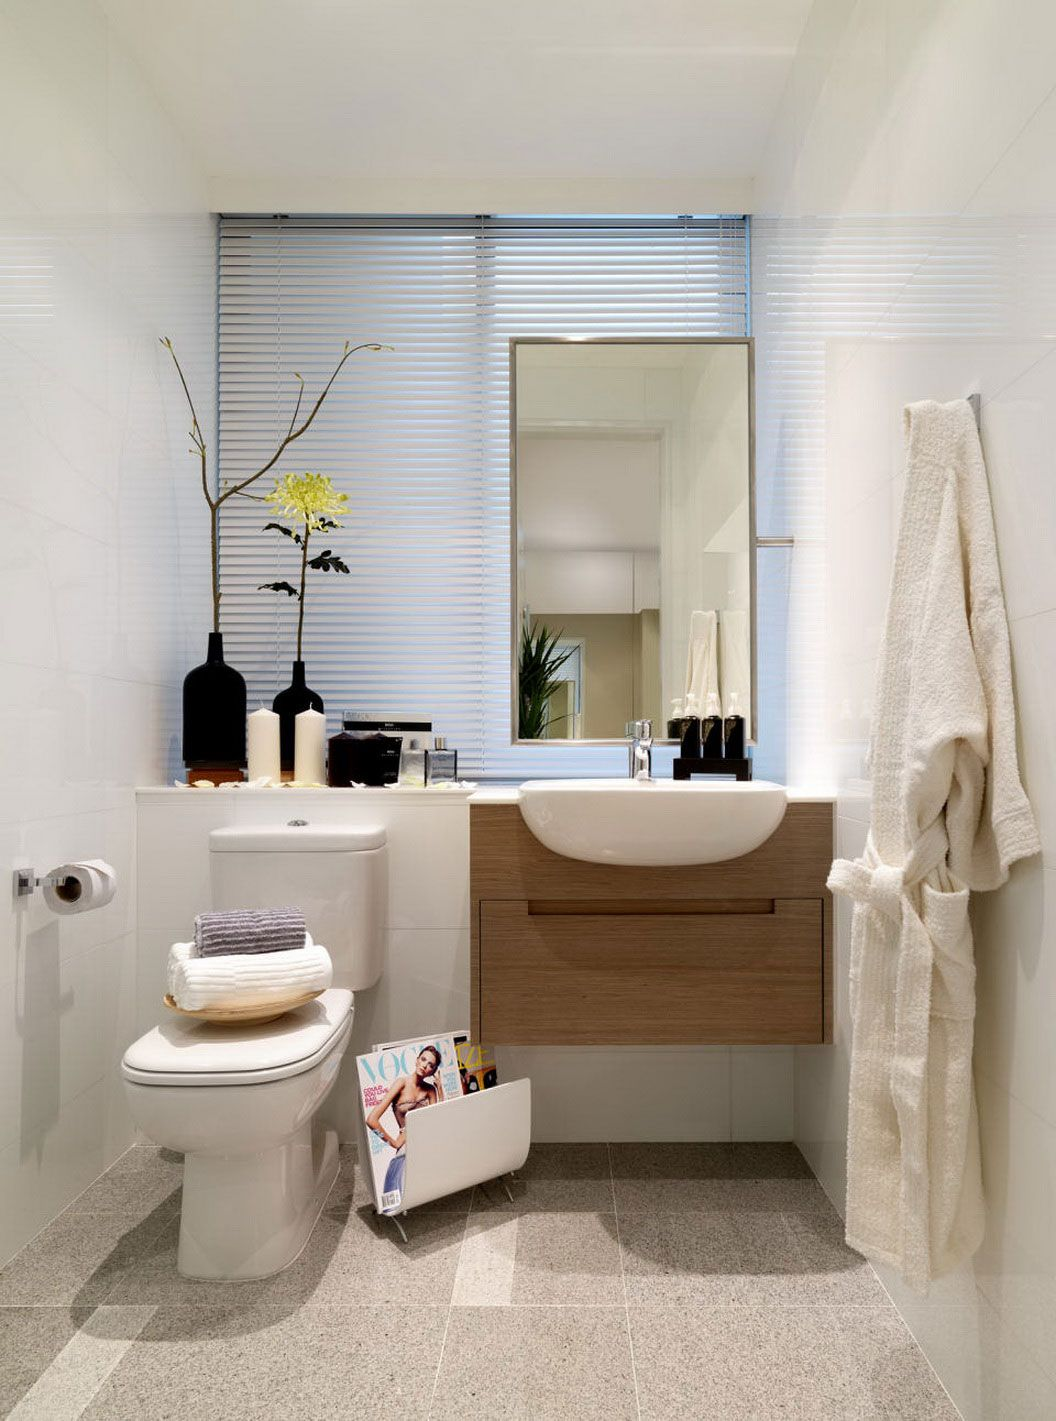 Bathroom Interior Design Ideas Alluringsmallbathroomvanitiesfabulousbeautifulmodernsmall